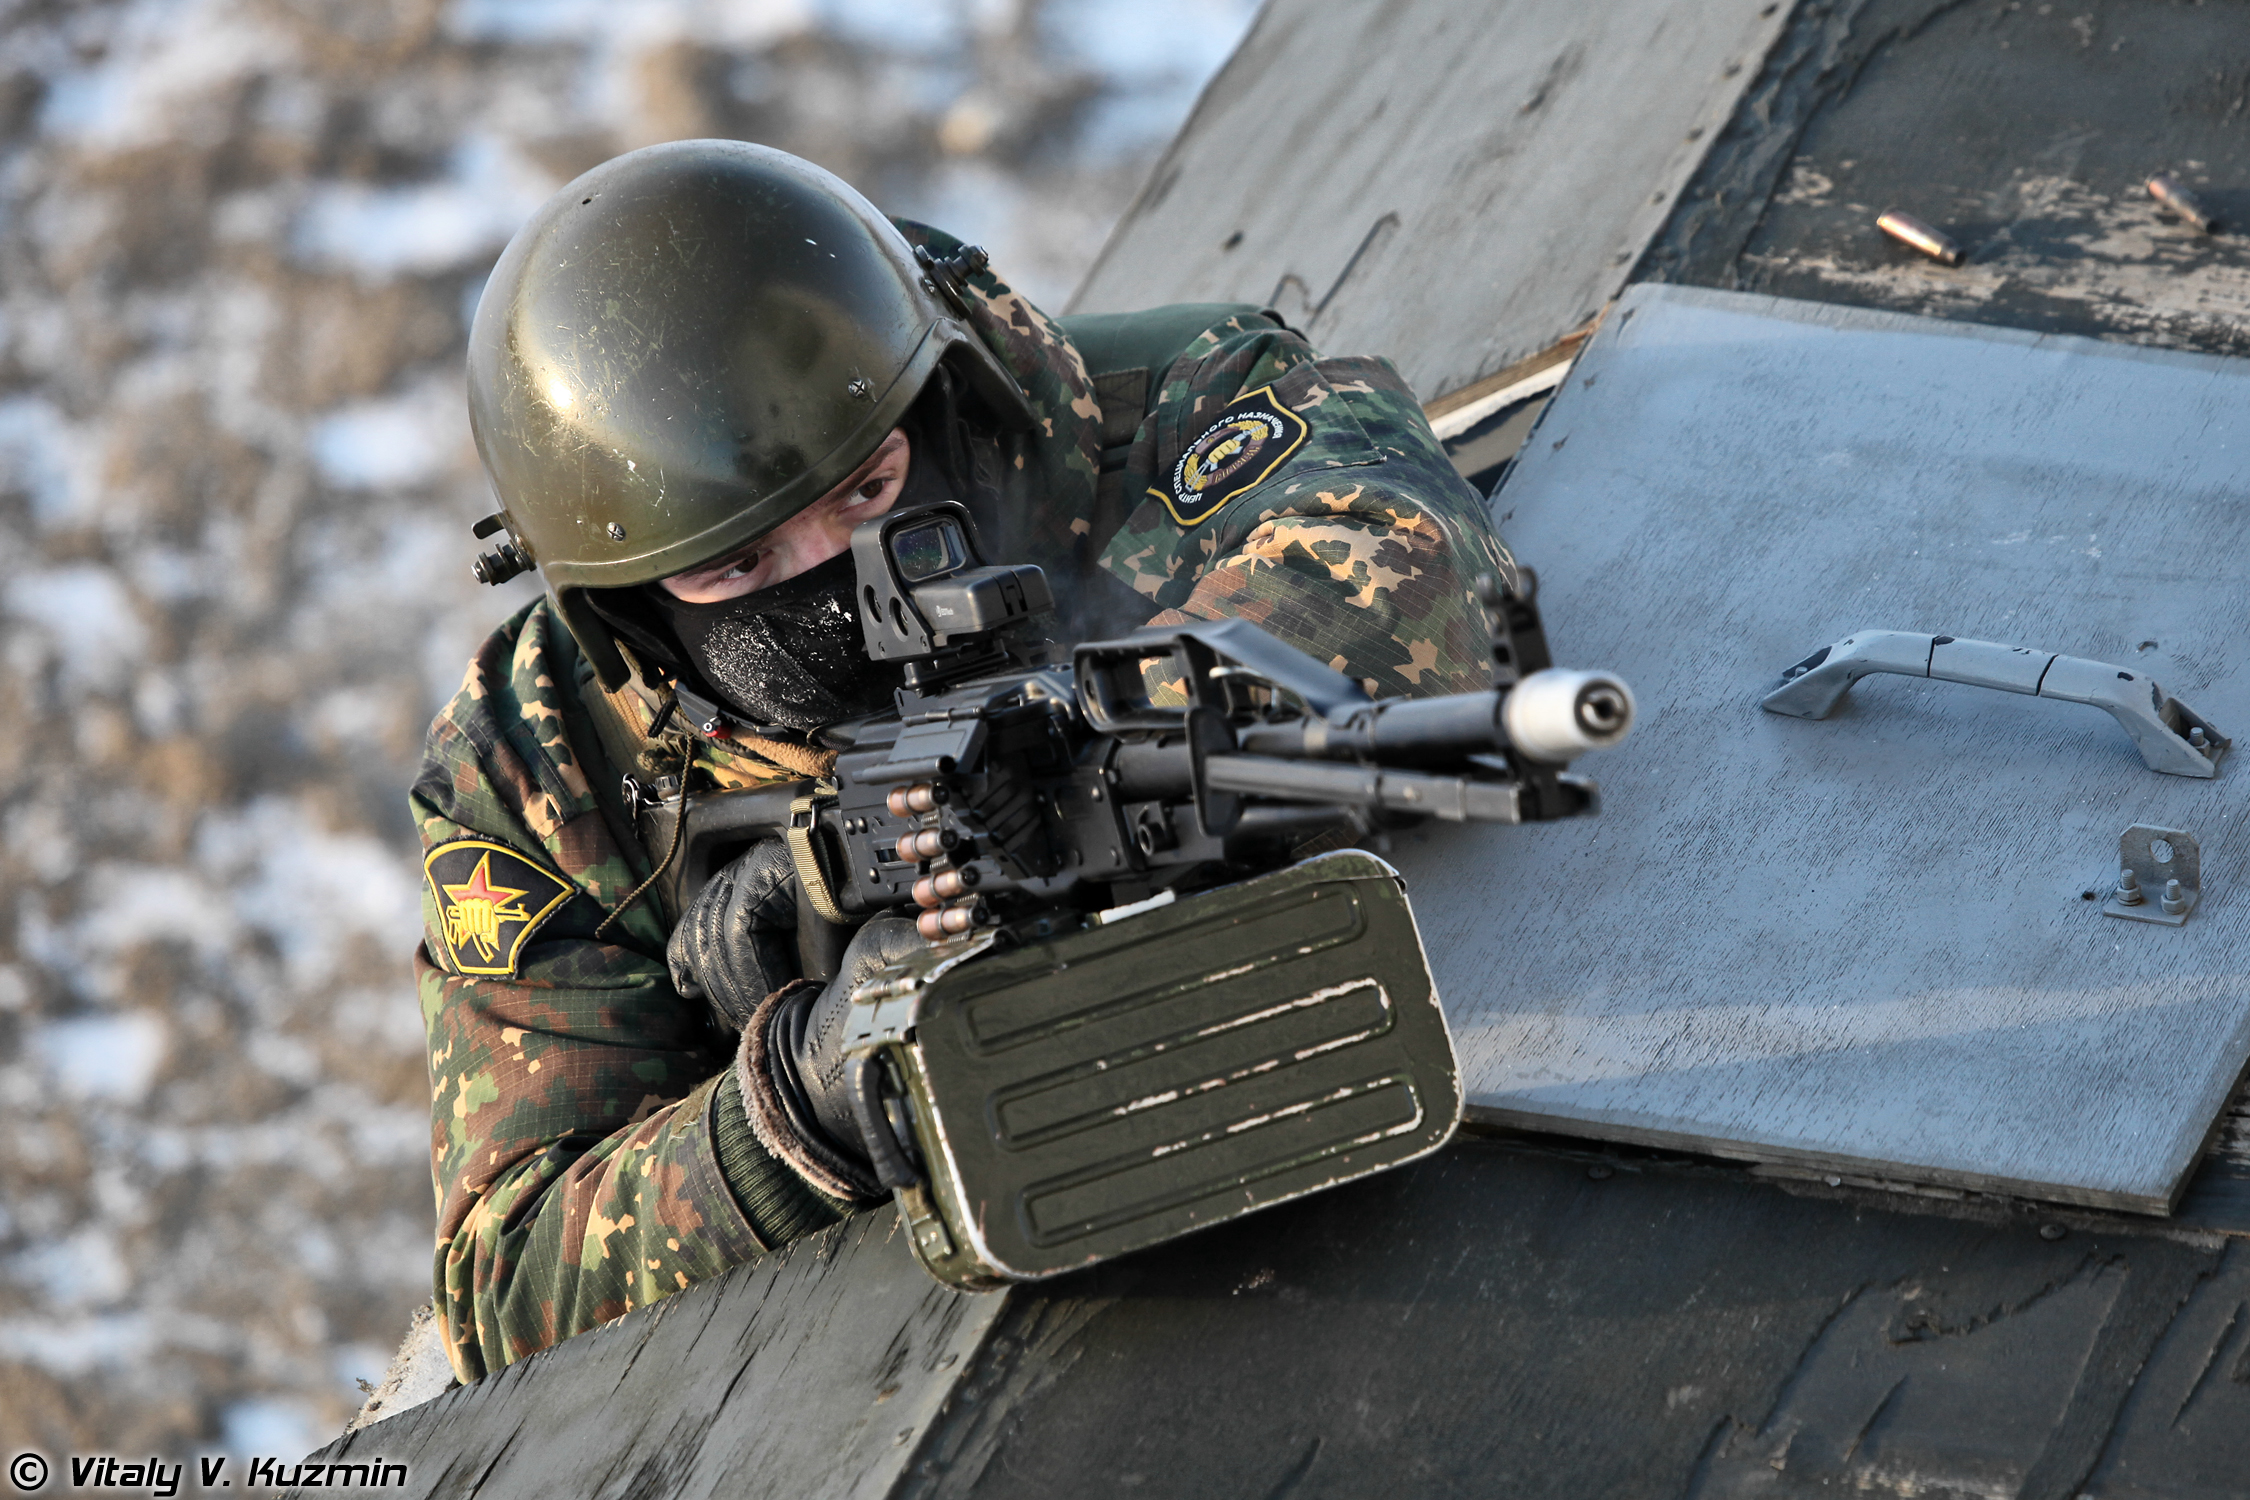 http://77rus.smugmug.com/Military/Ural-Federal-and-604th-TsSN/i-qZgb6r9/0/O/FederalandTsSNVityaz15.jpg